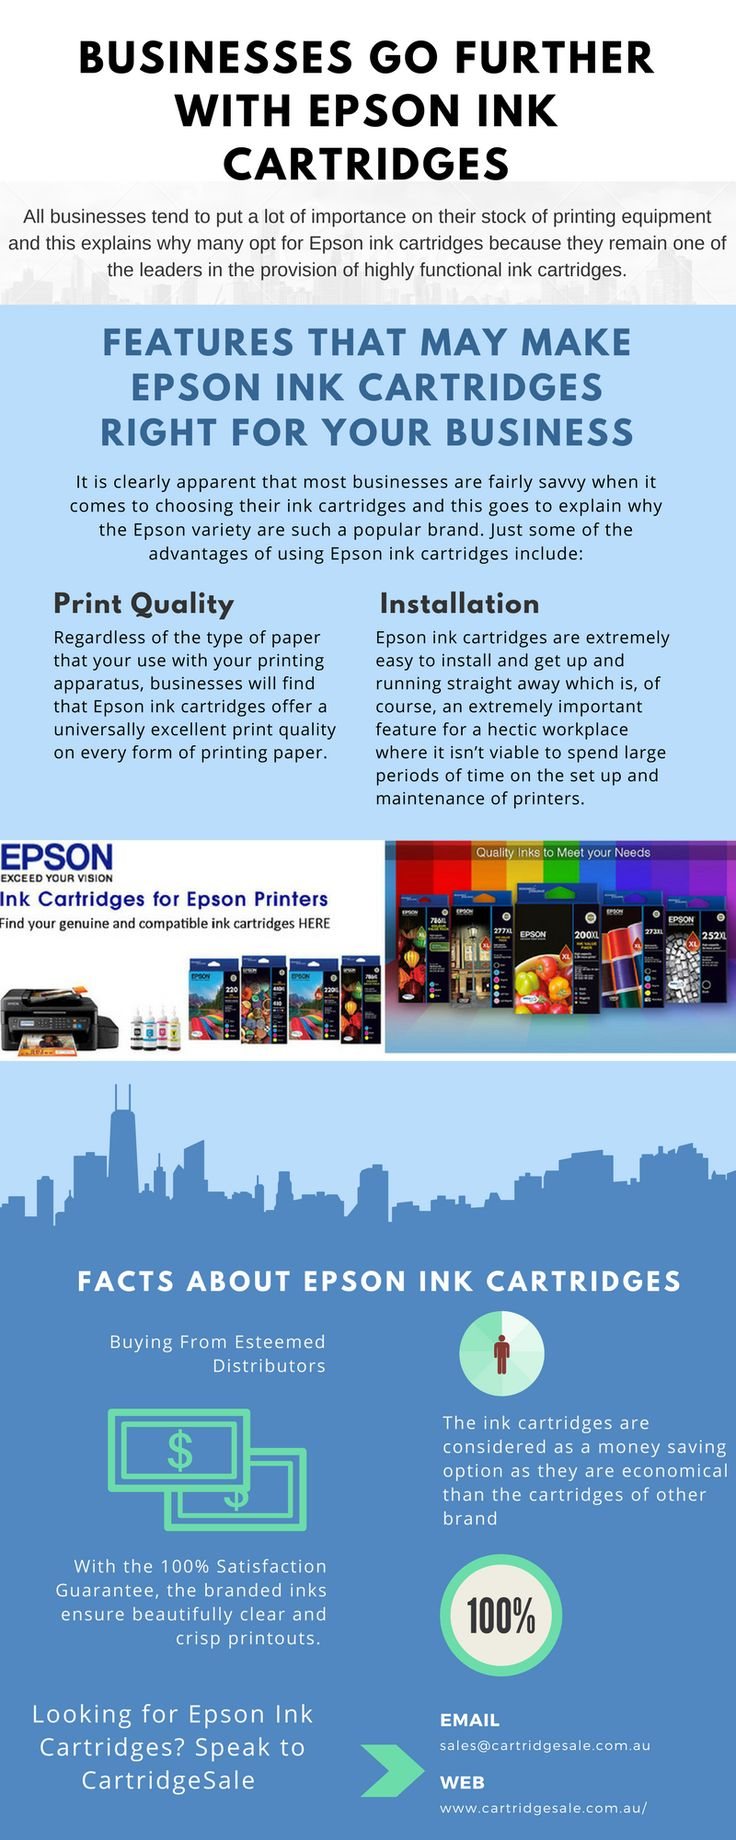 Features that May make EPSON Ink Cartridges Right for Your Business